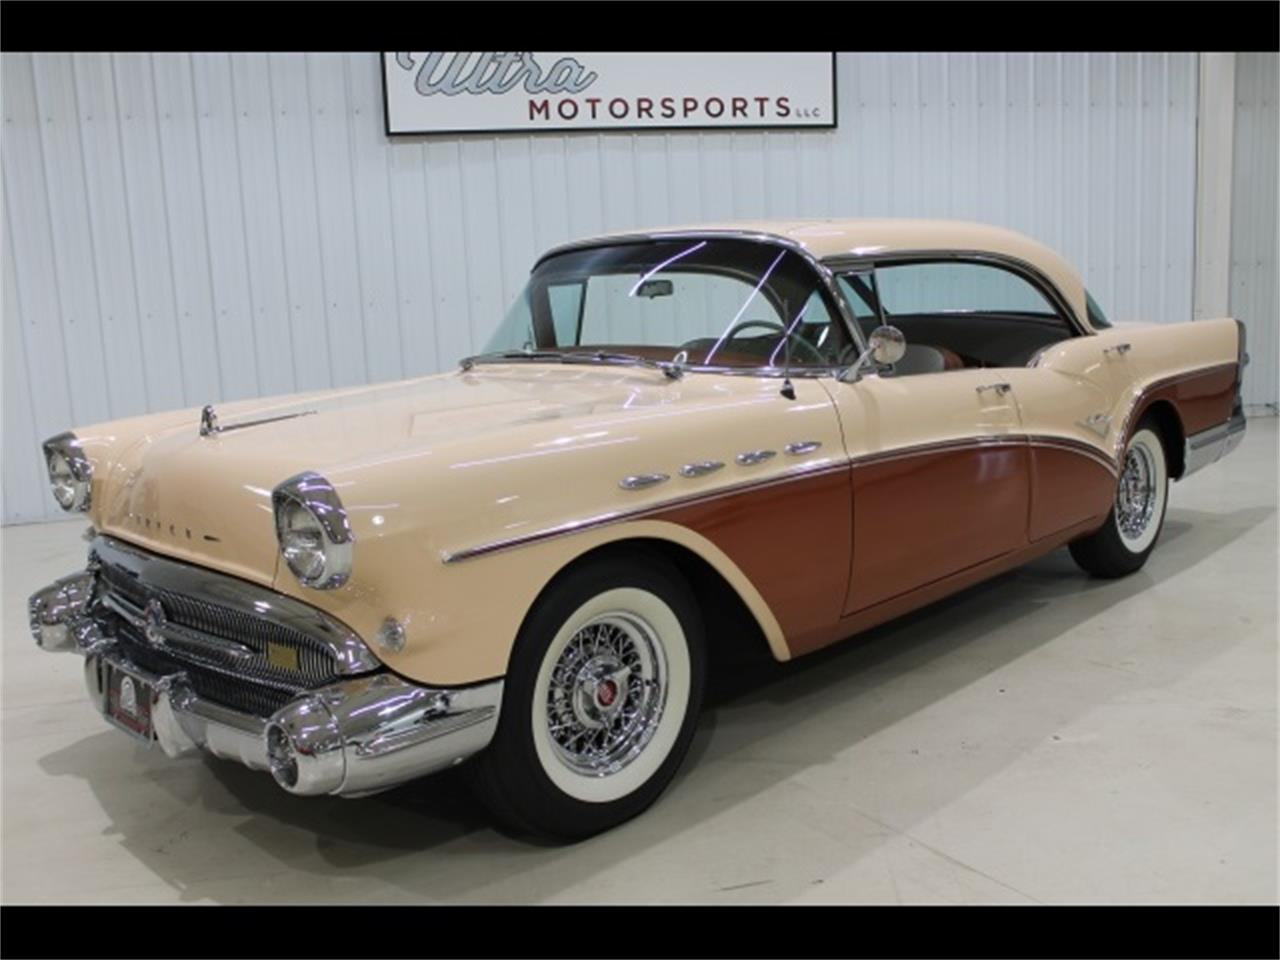 Large Picture of Classic '57 Buick Century located in Fort Wayne Indiana - $37,500.00 Offered by Ultra Motorsports - NOE1